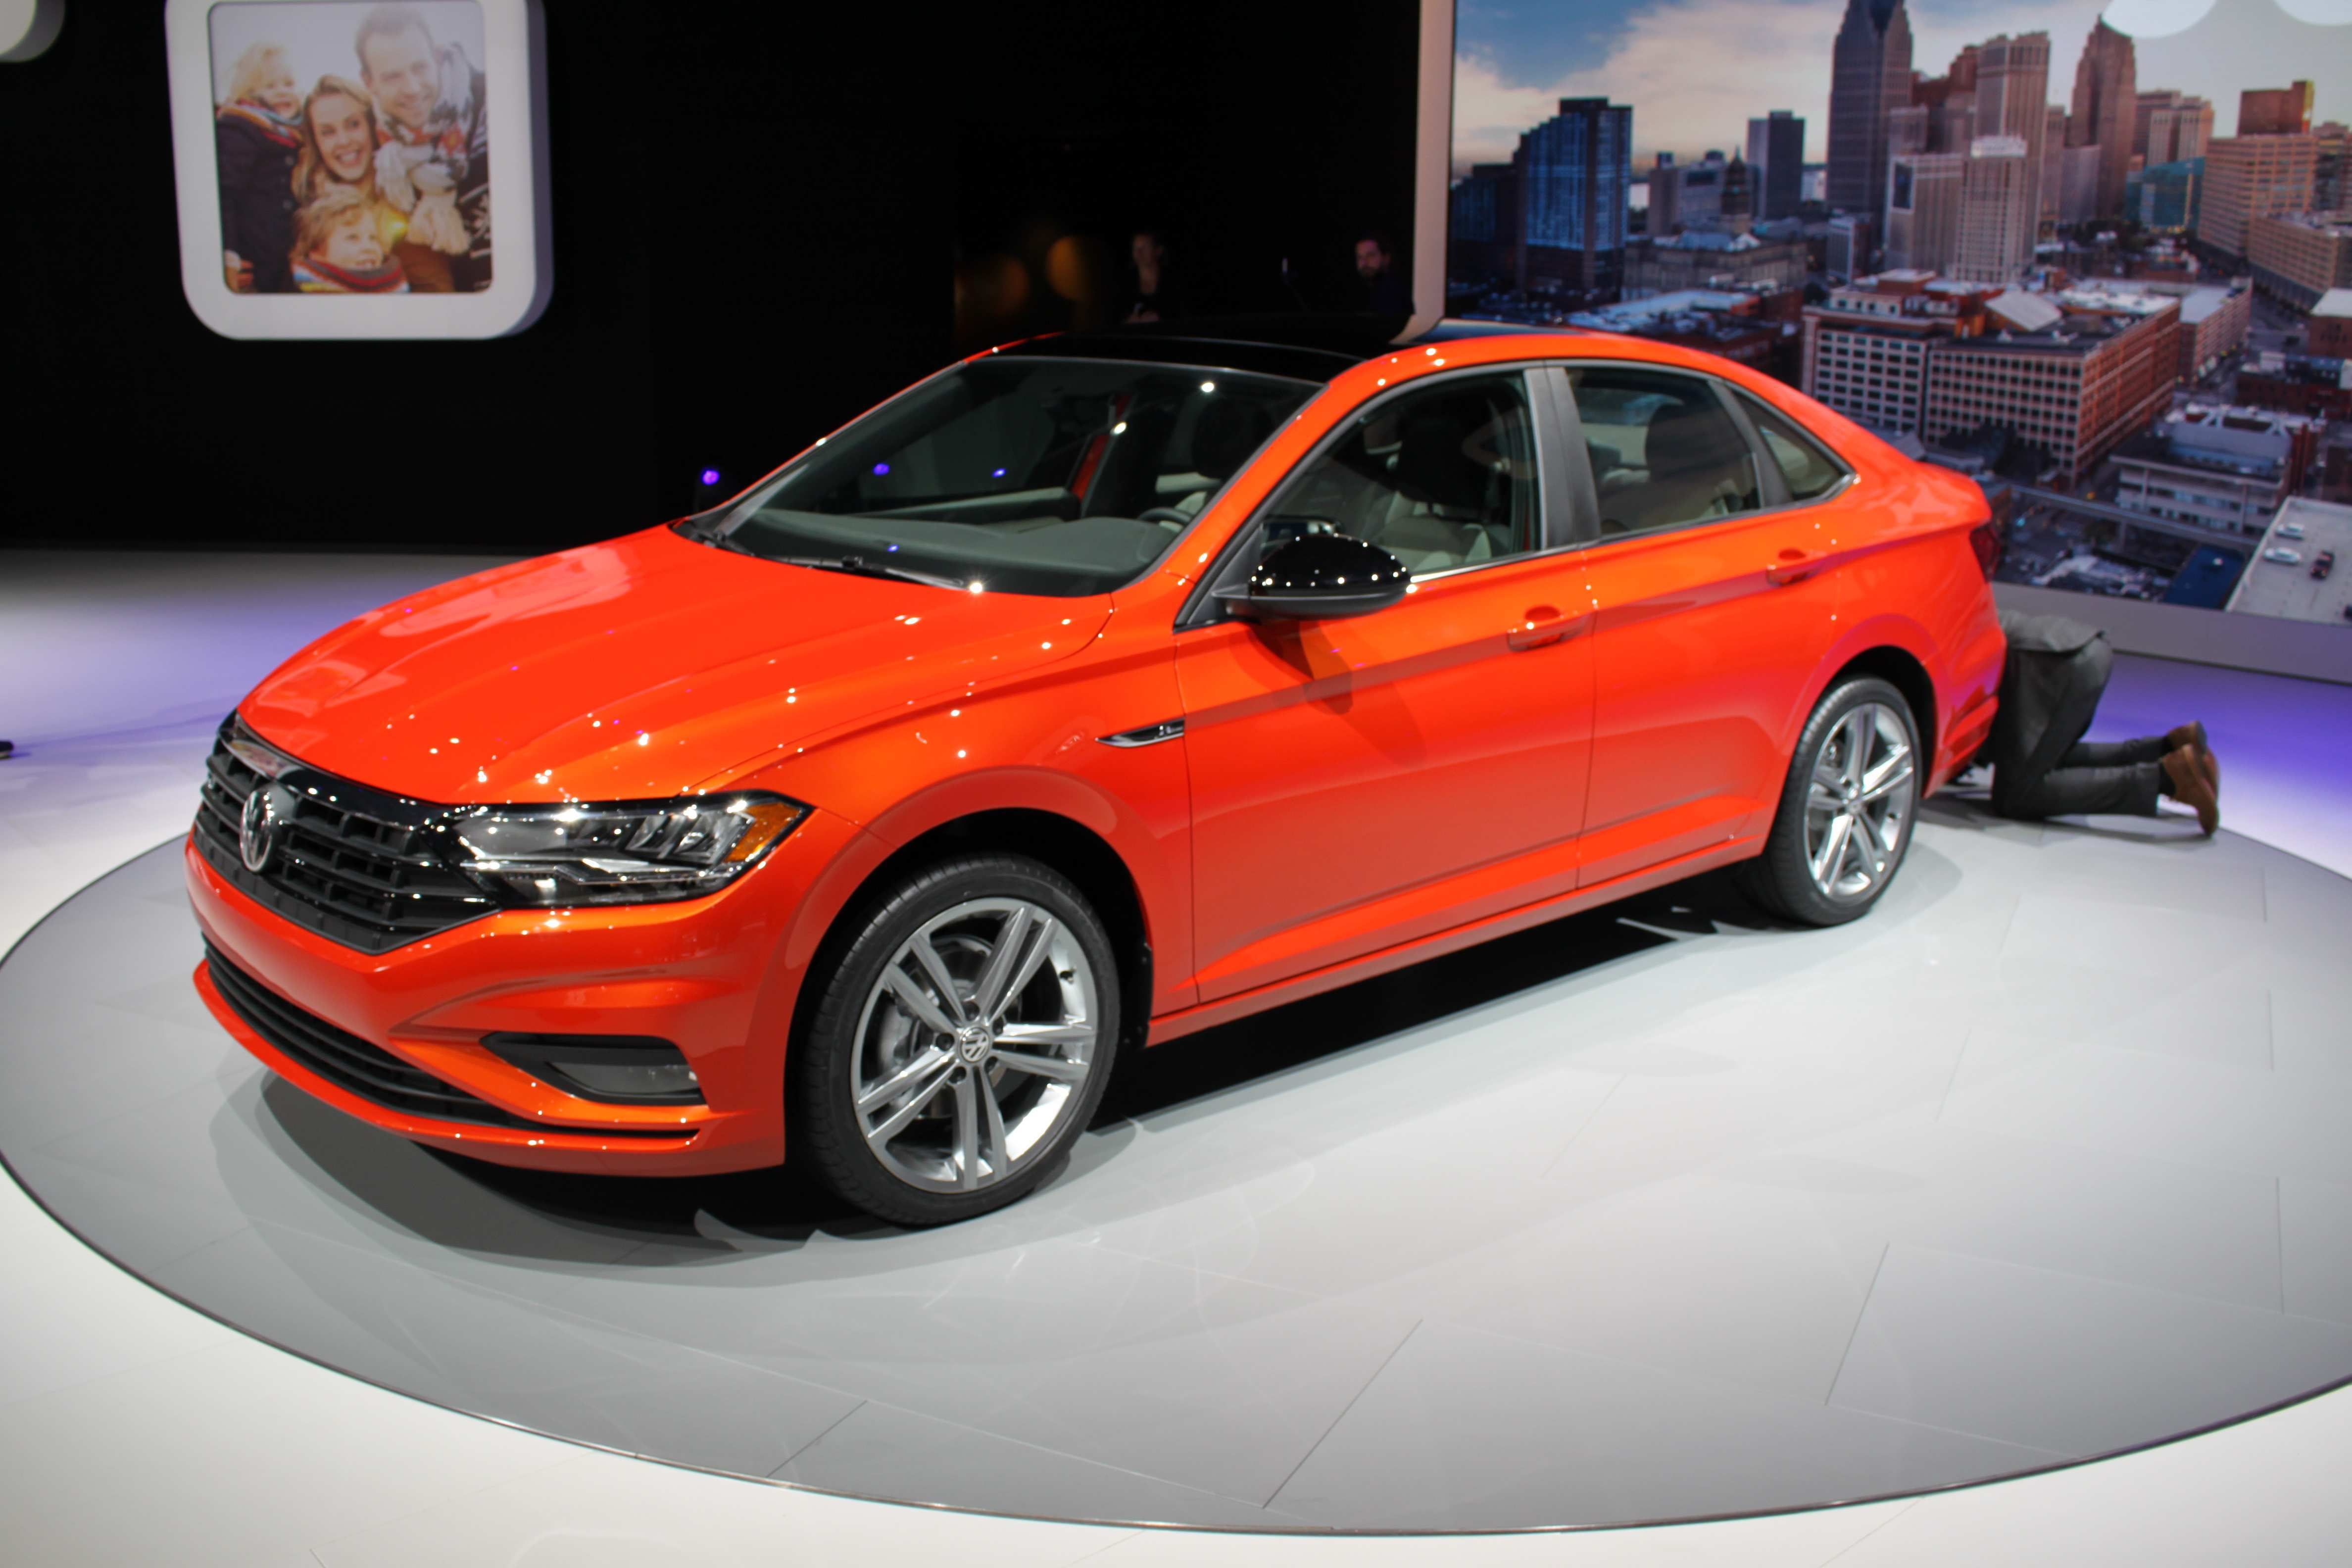 73 Gallery of The 2019 Volkswagen Jetta 1 4T R Line Exterior And Interior Review Price by The 2019 Volkswagen Jetta 1 4T R Line Exterior And Interior Review